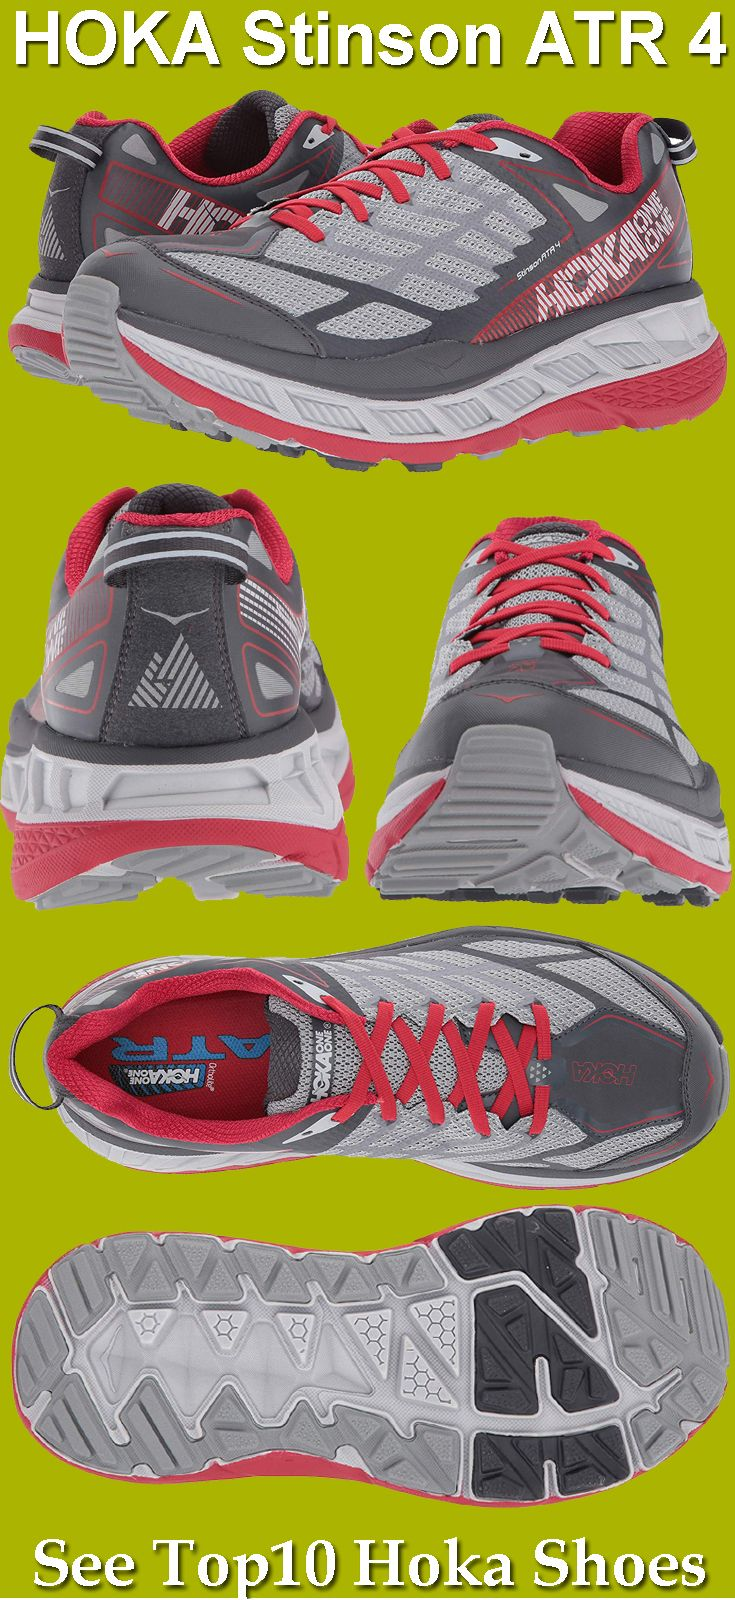 The highest volume CMEVA midsole in the HOKA ONE ONE for